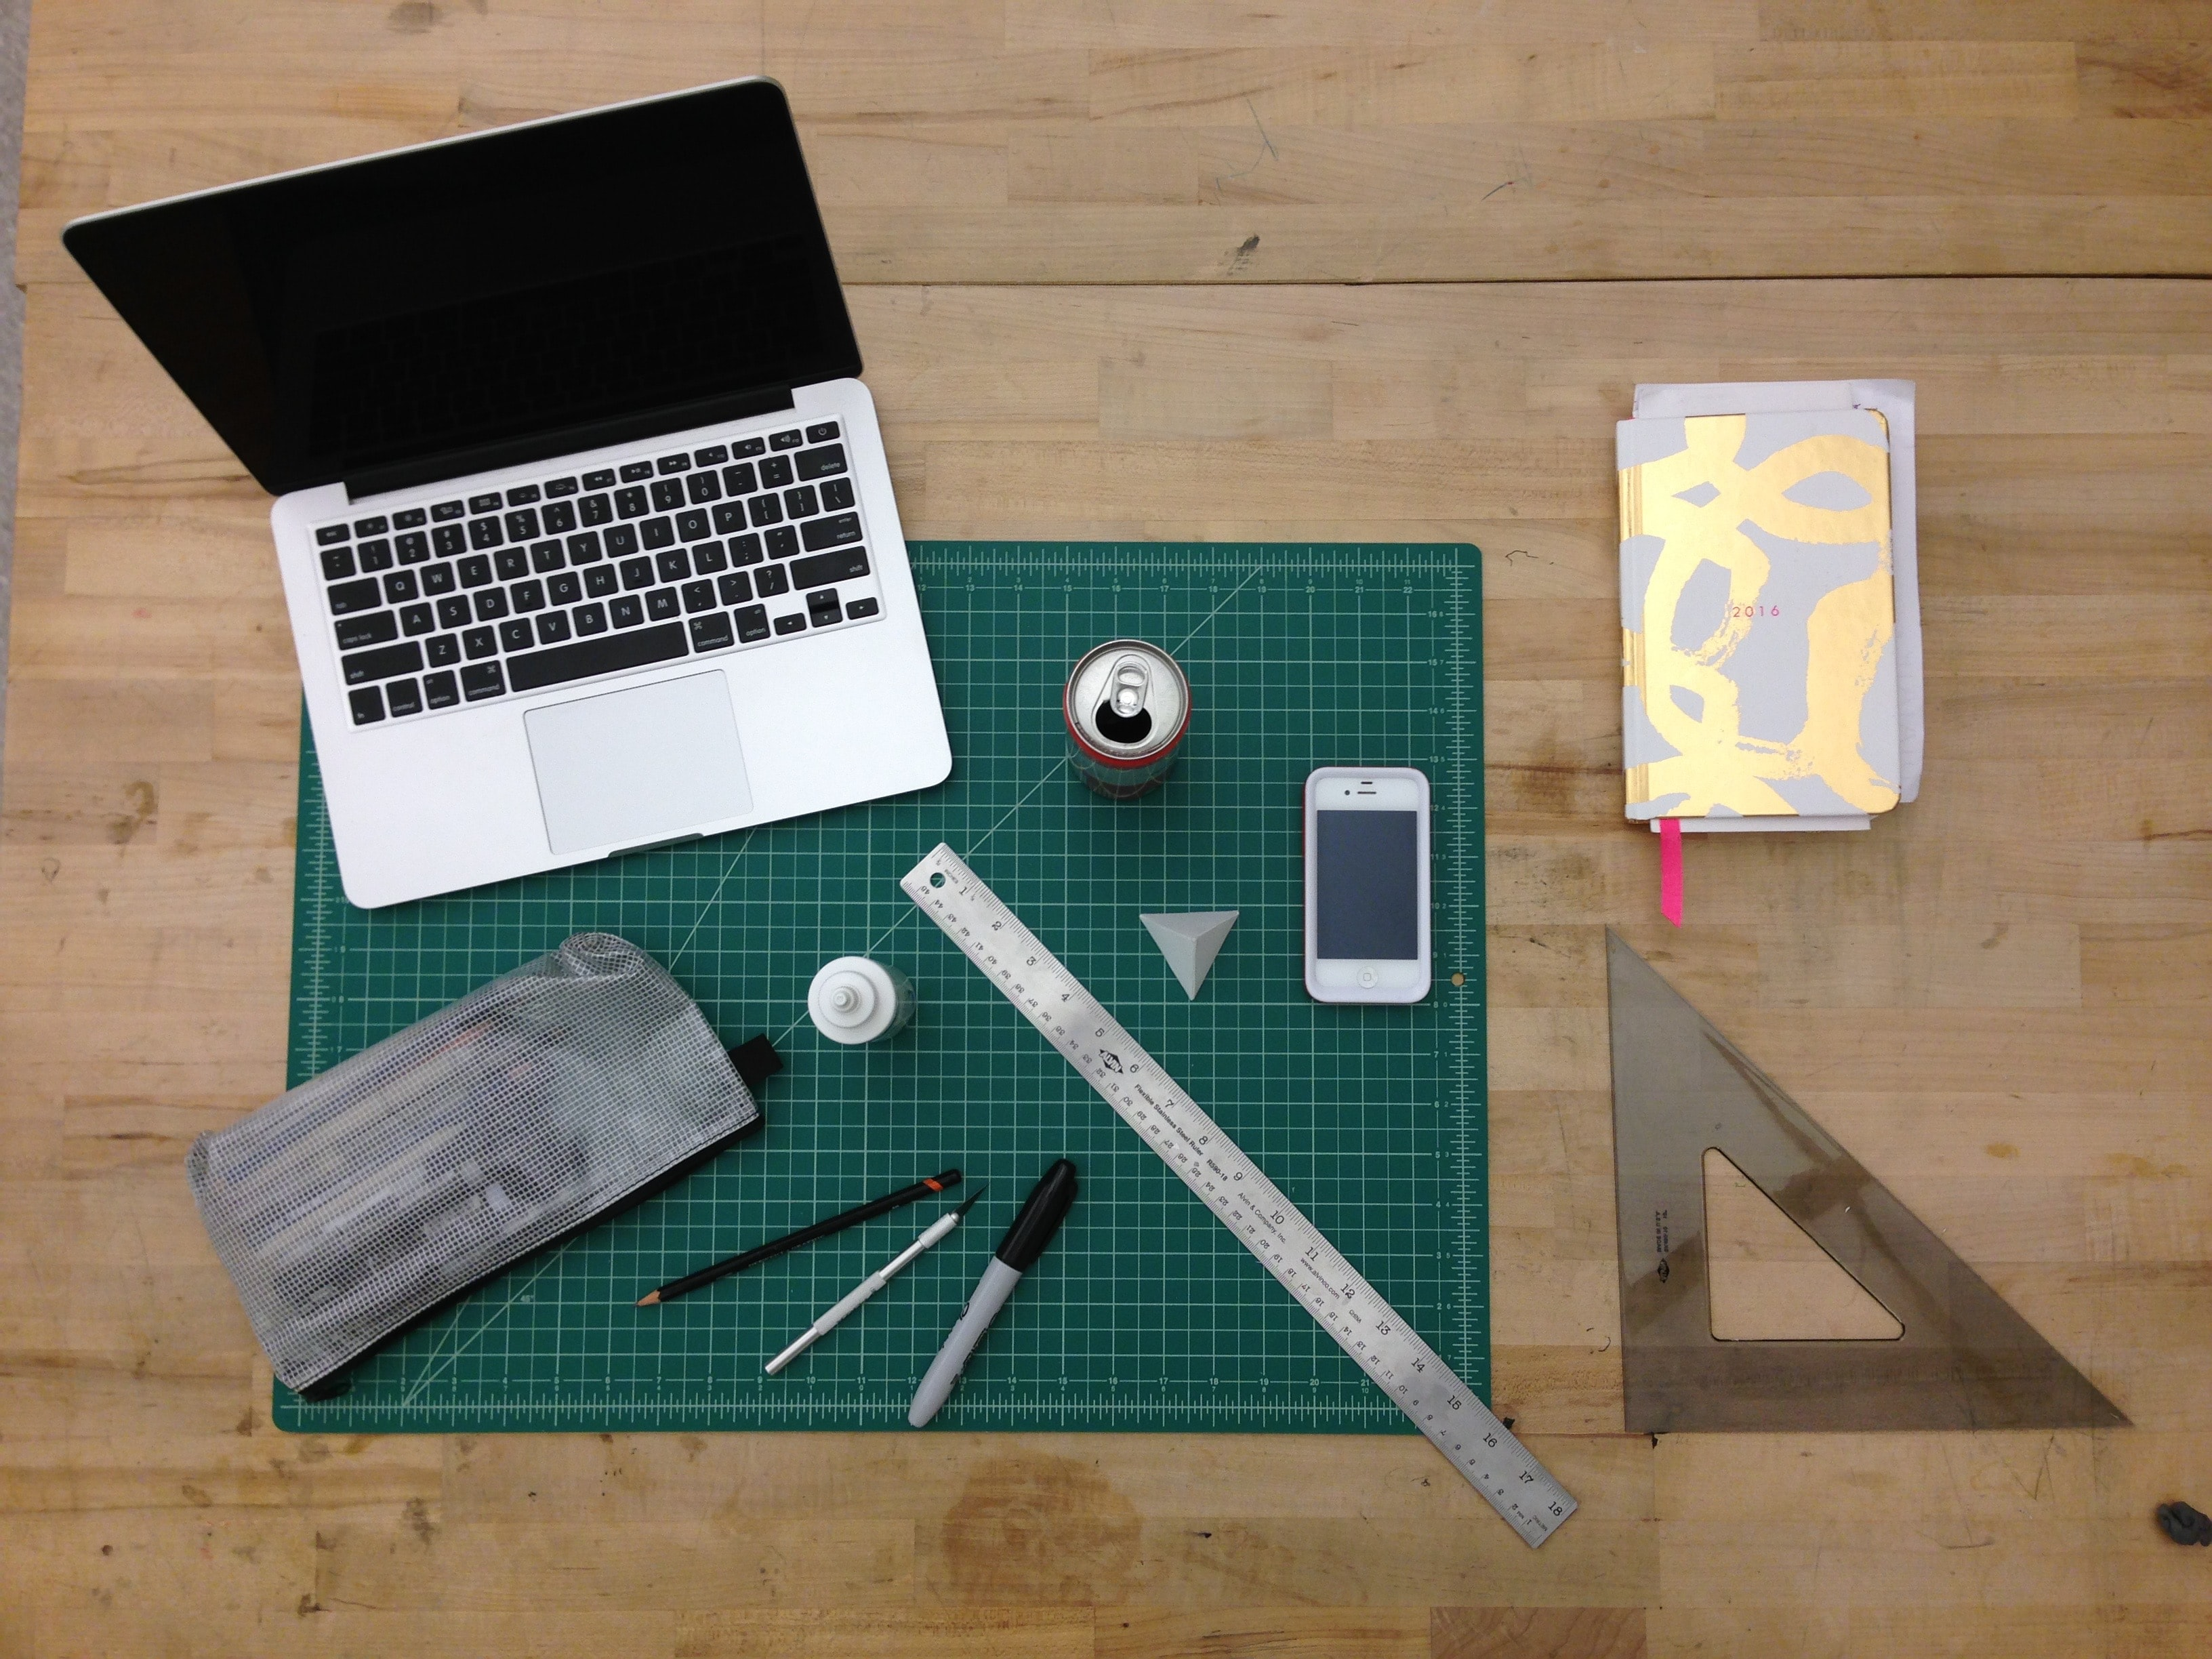 flat lay photography of MacBook, ruler, and can